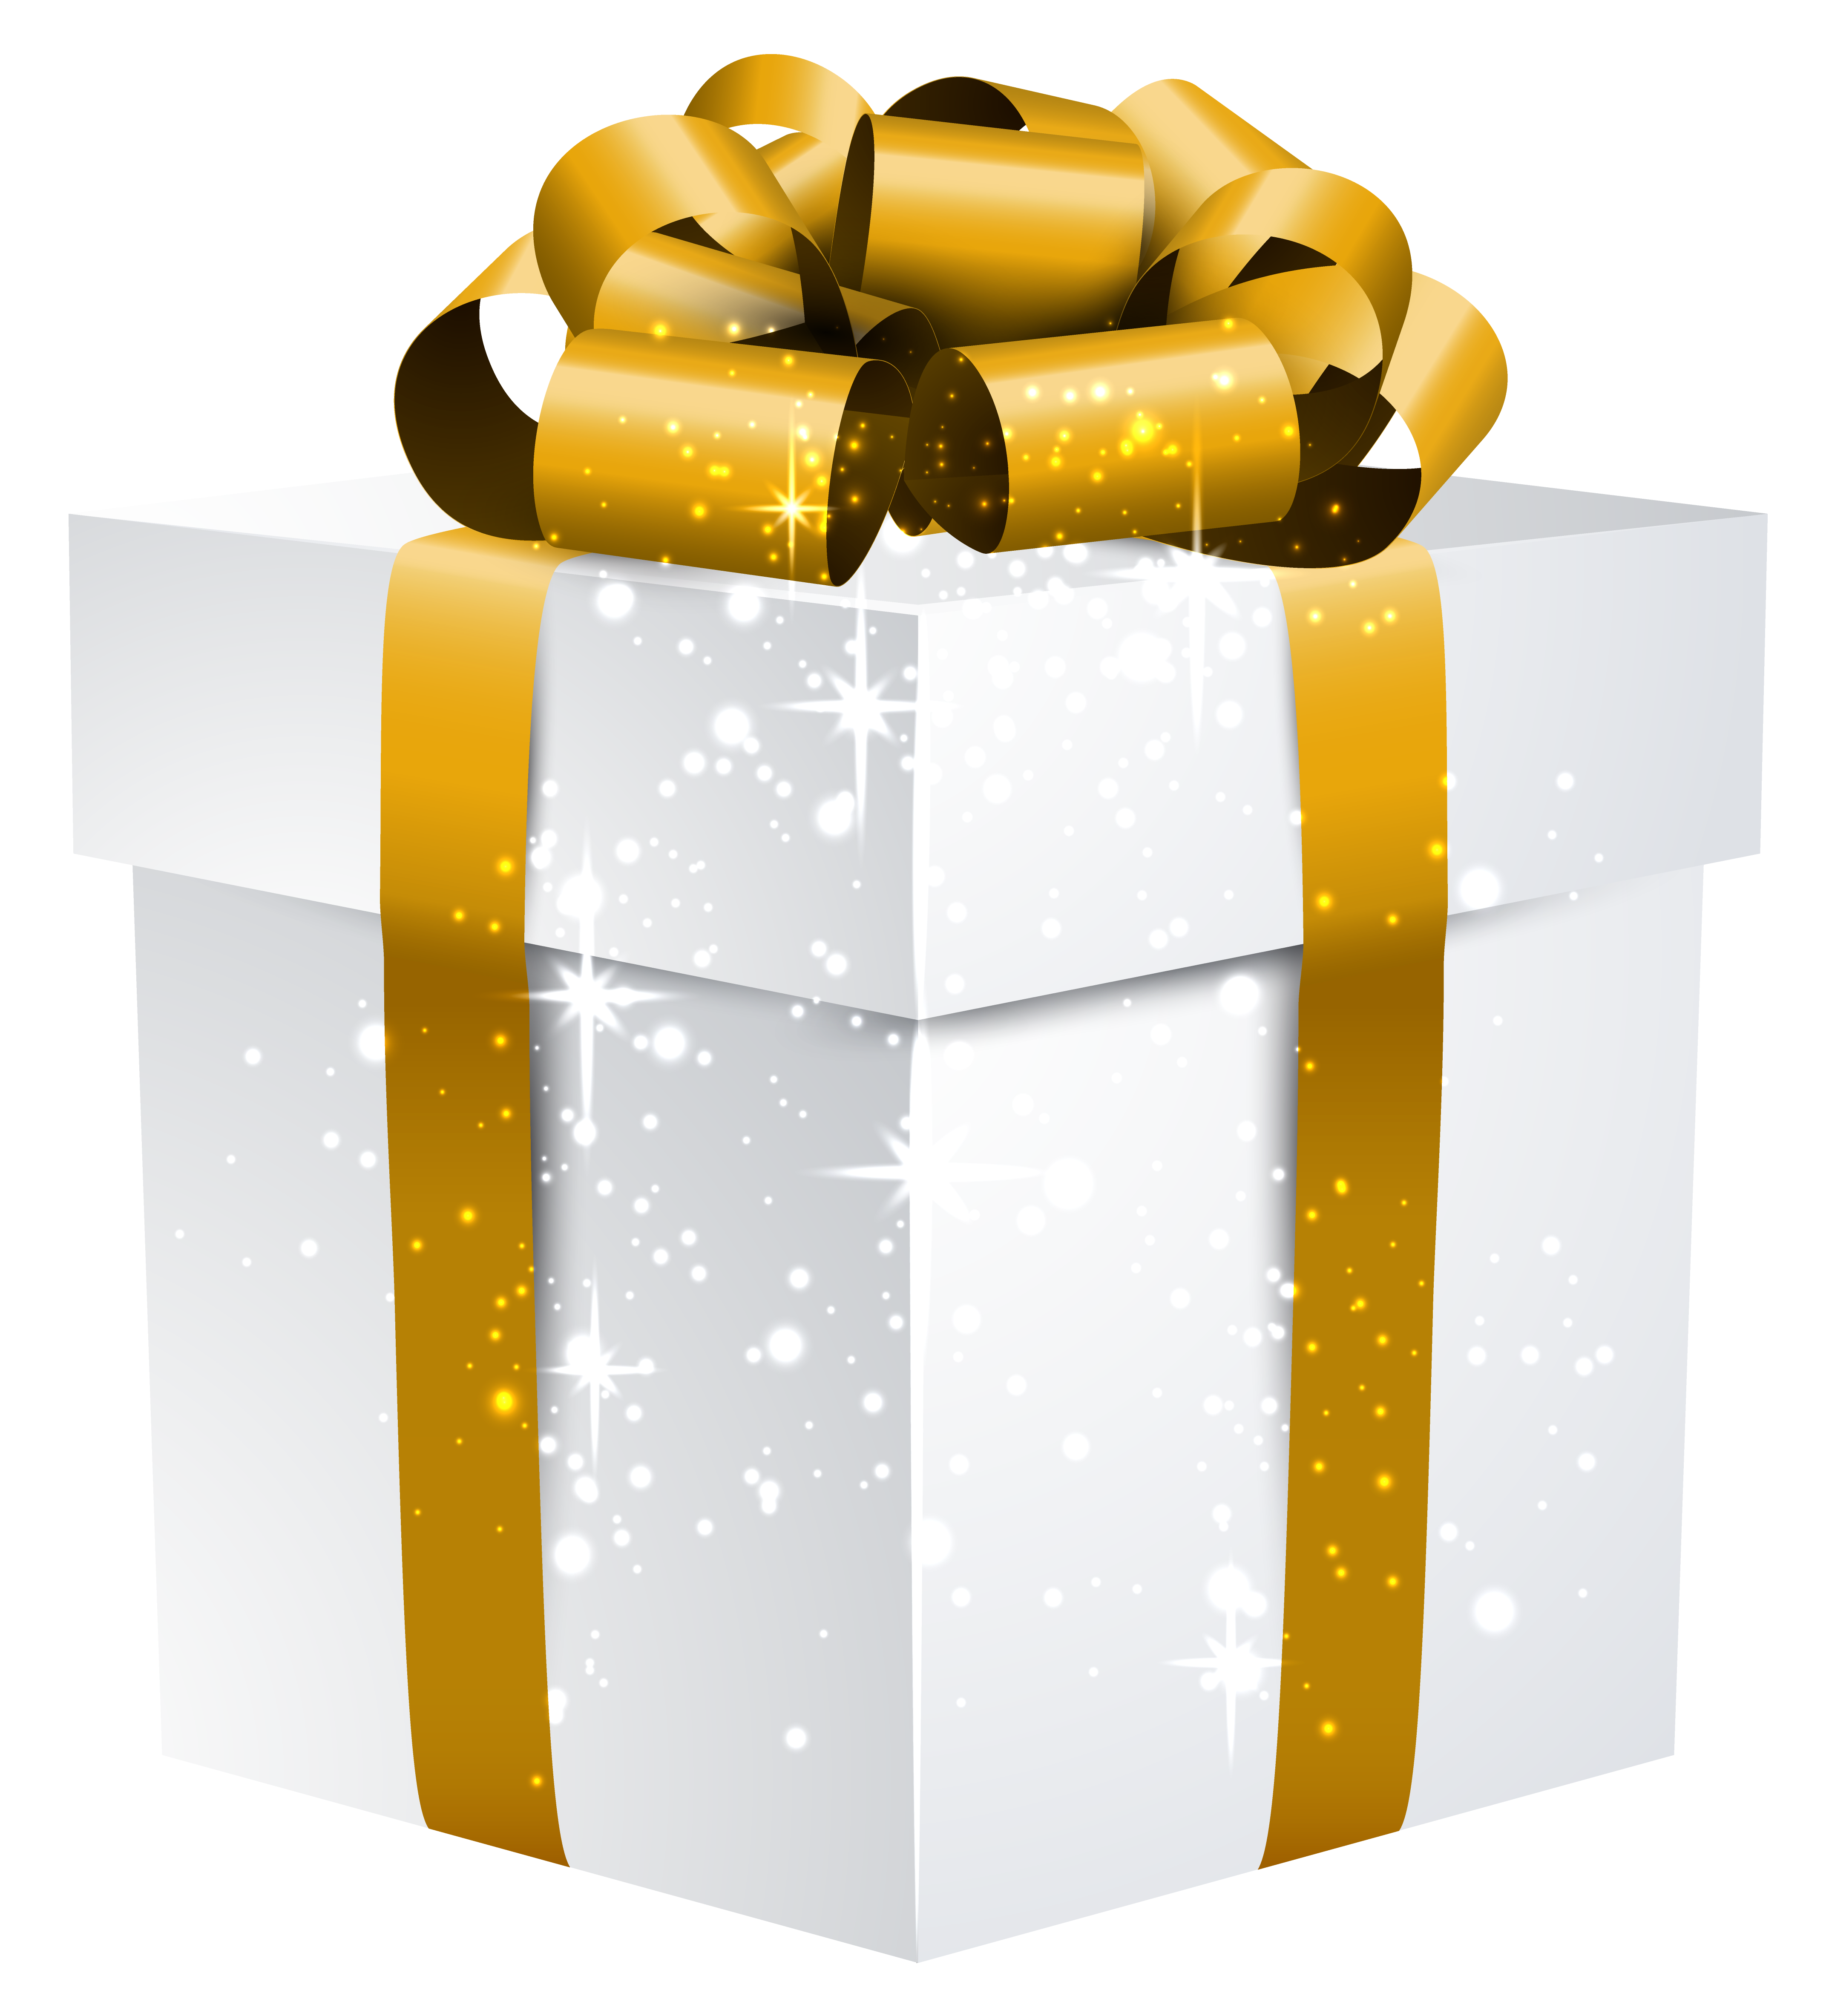 svg freeuse library Gifts clipart gold. White shining gift box